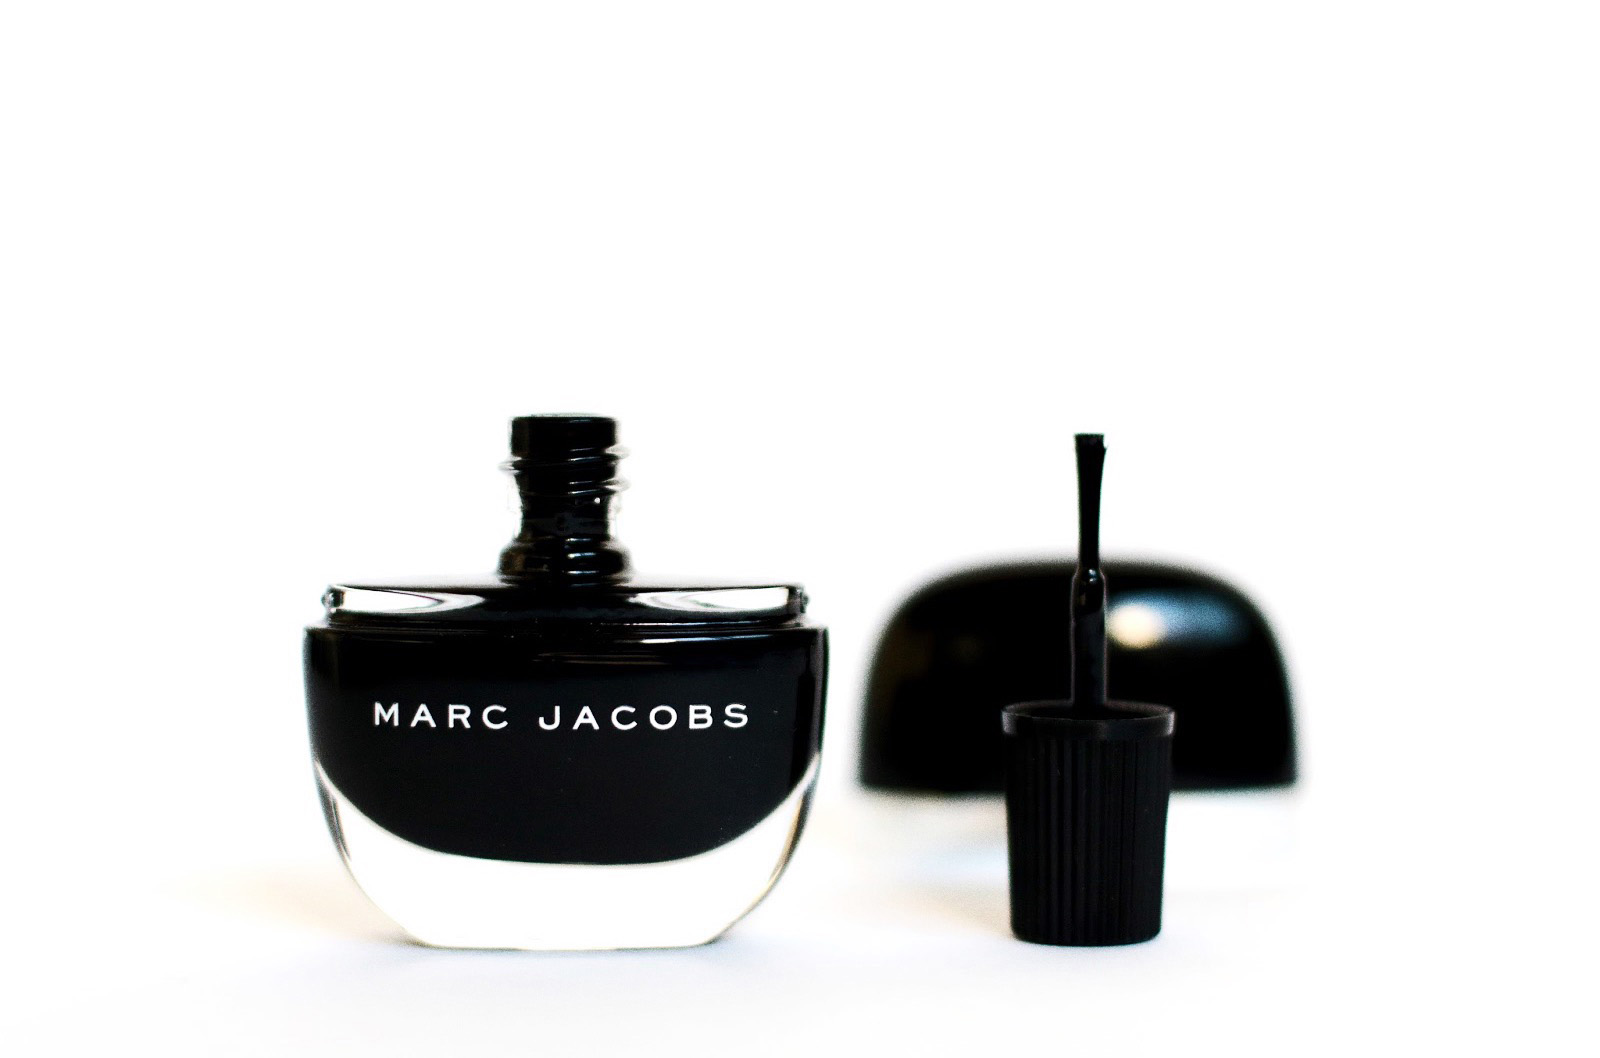 marc jacobs vernis à ongles blacquer avis test swatch